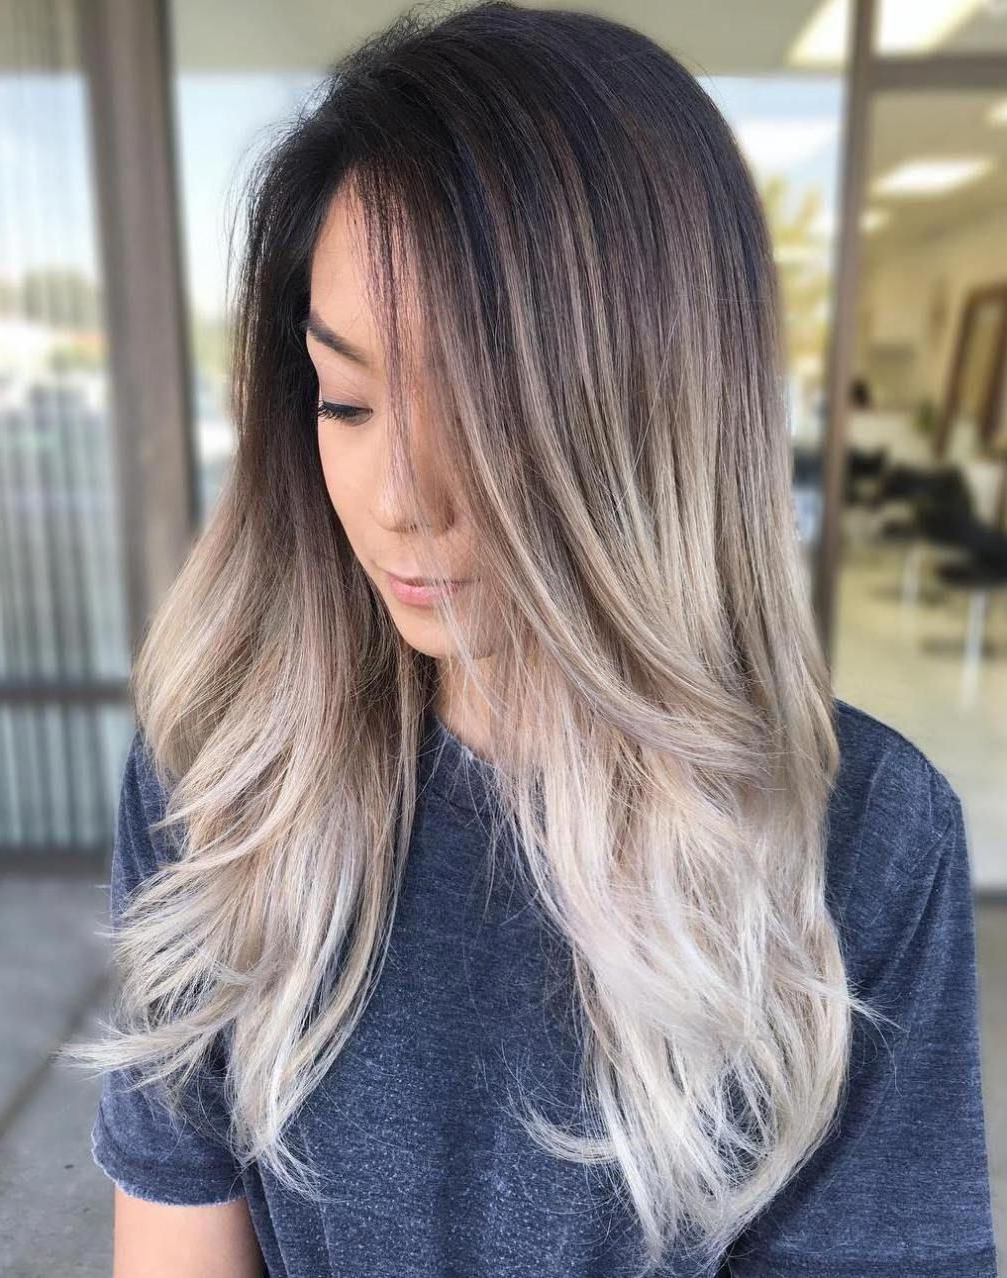 Dark Brown Hair With Ash Blonde Ombre #ombrehairstyles With Favorite Ash Bronde Ombre Hairstyles (Gallery 4 of 20)